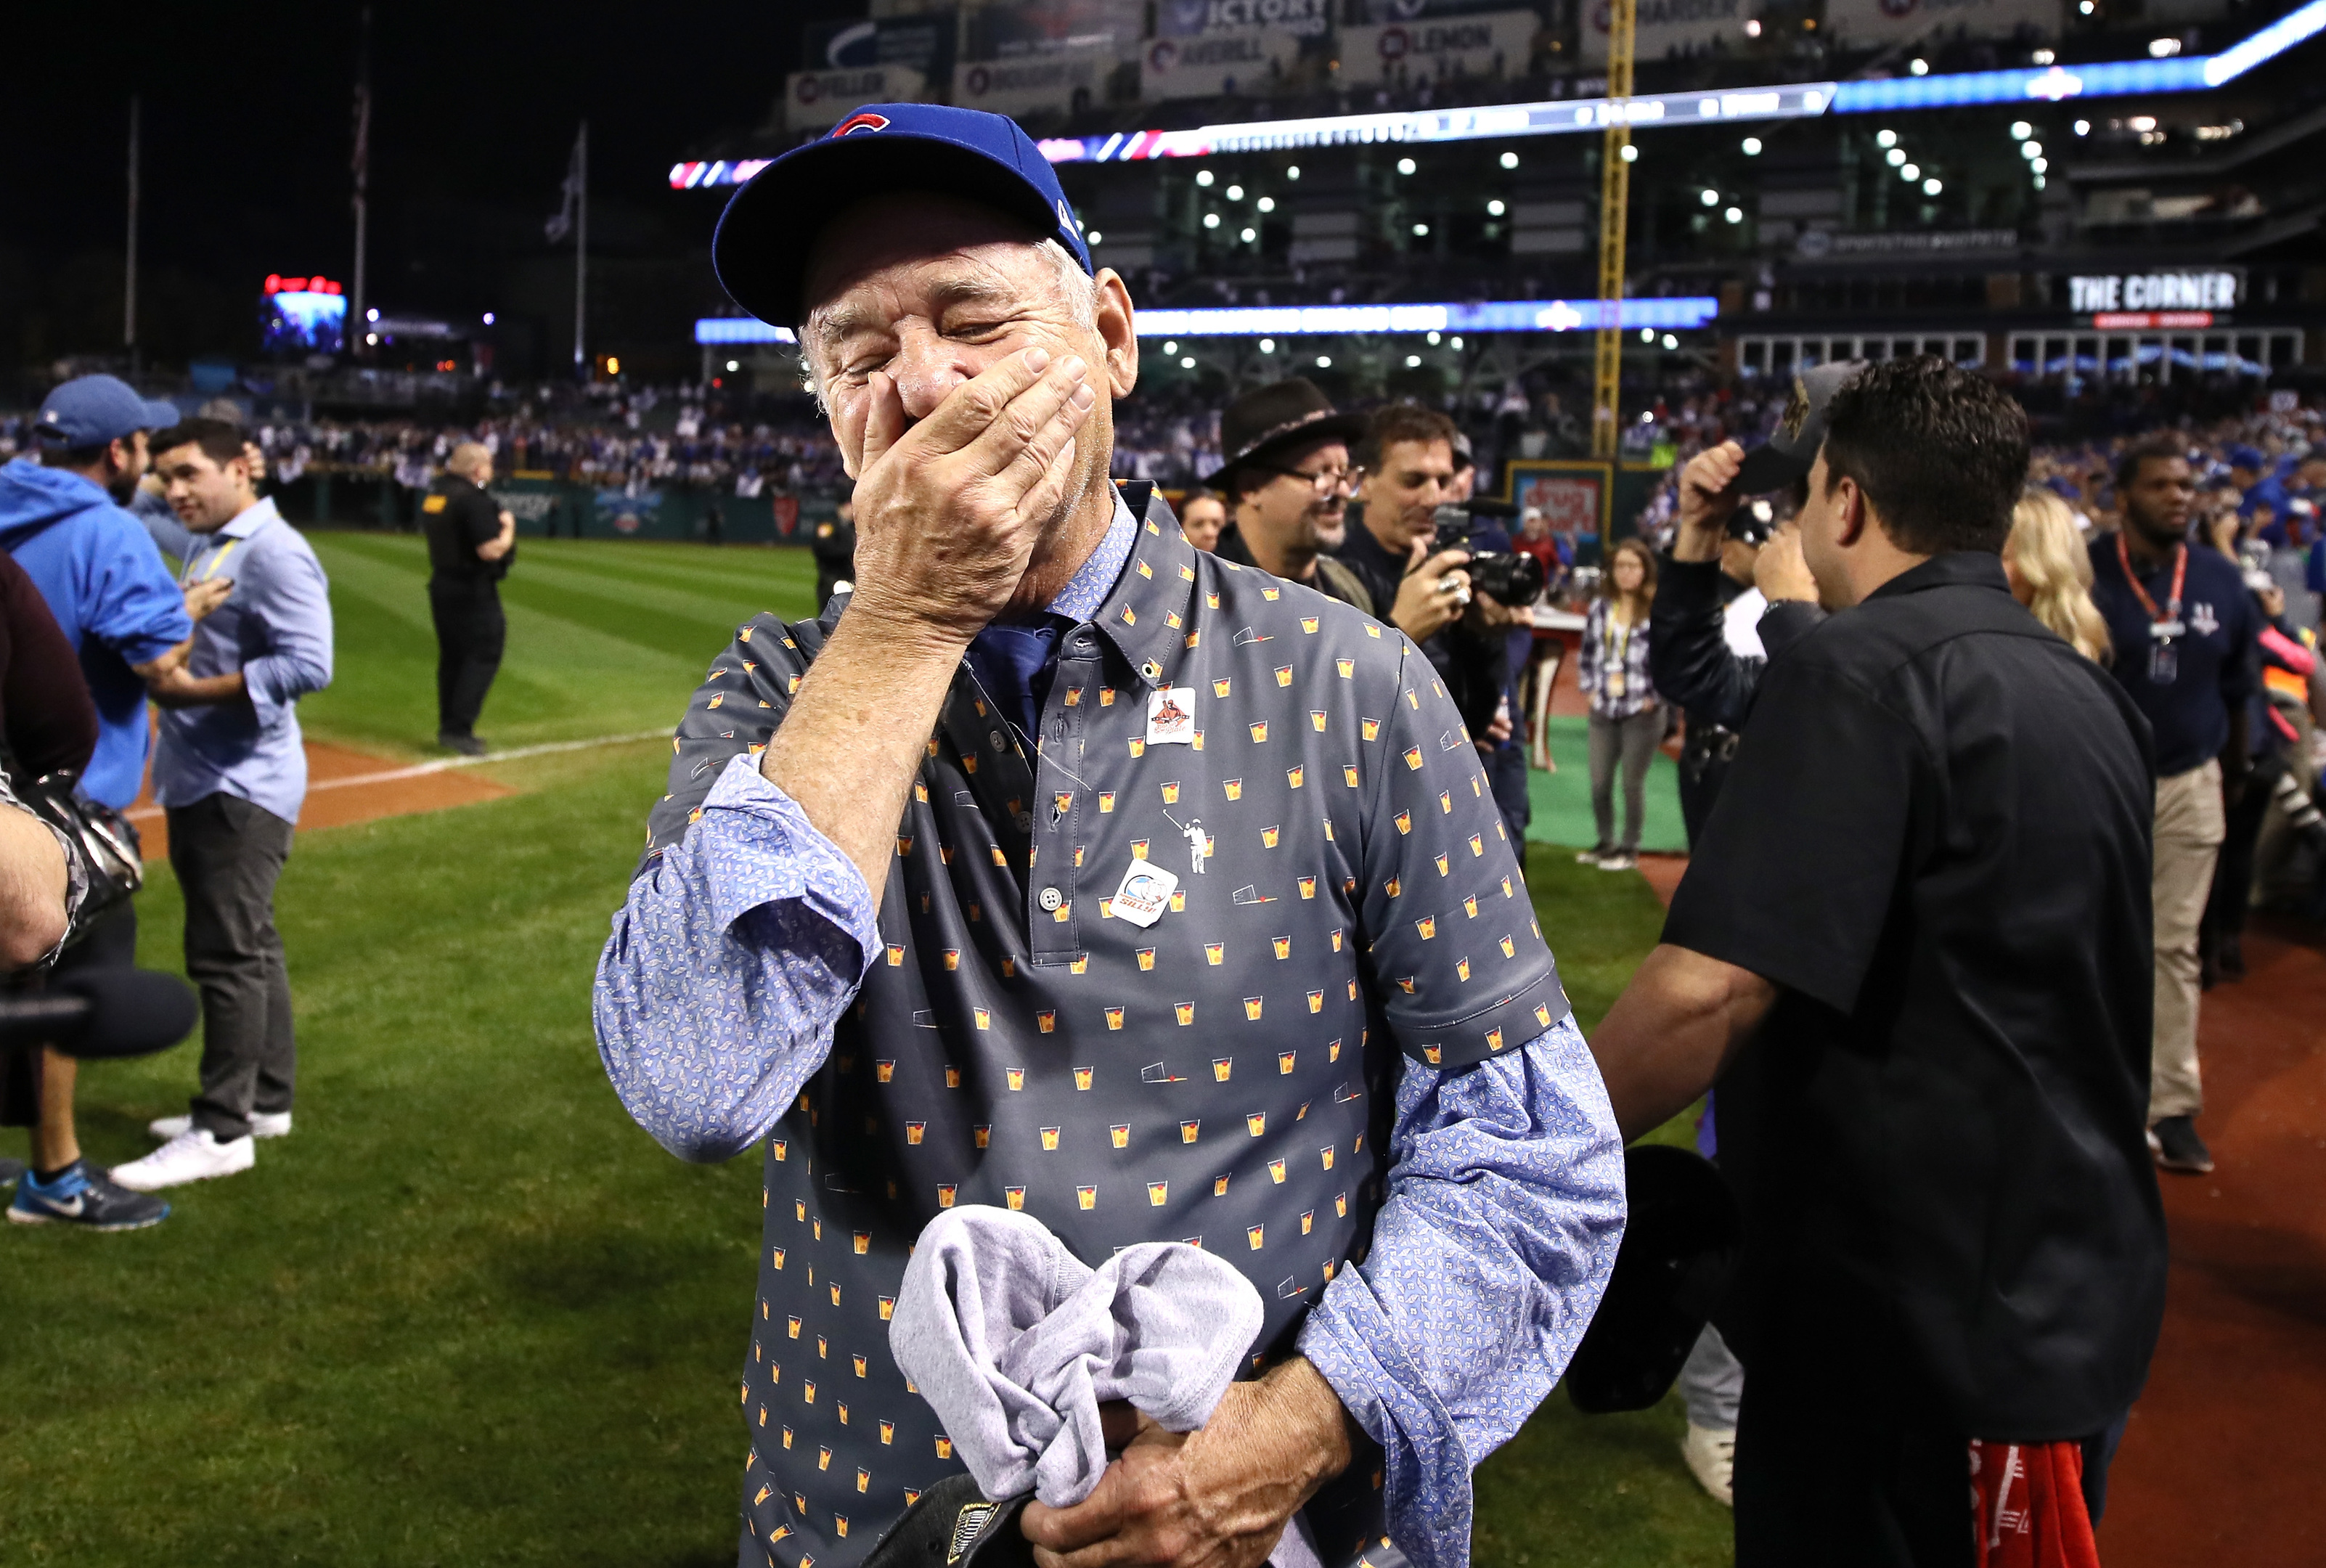 Actor Bill Murray reacts on the field after the Chicago Cubs defeated the Cleveland Indians (Ezra Shaw/Getty Images)